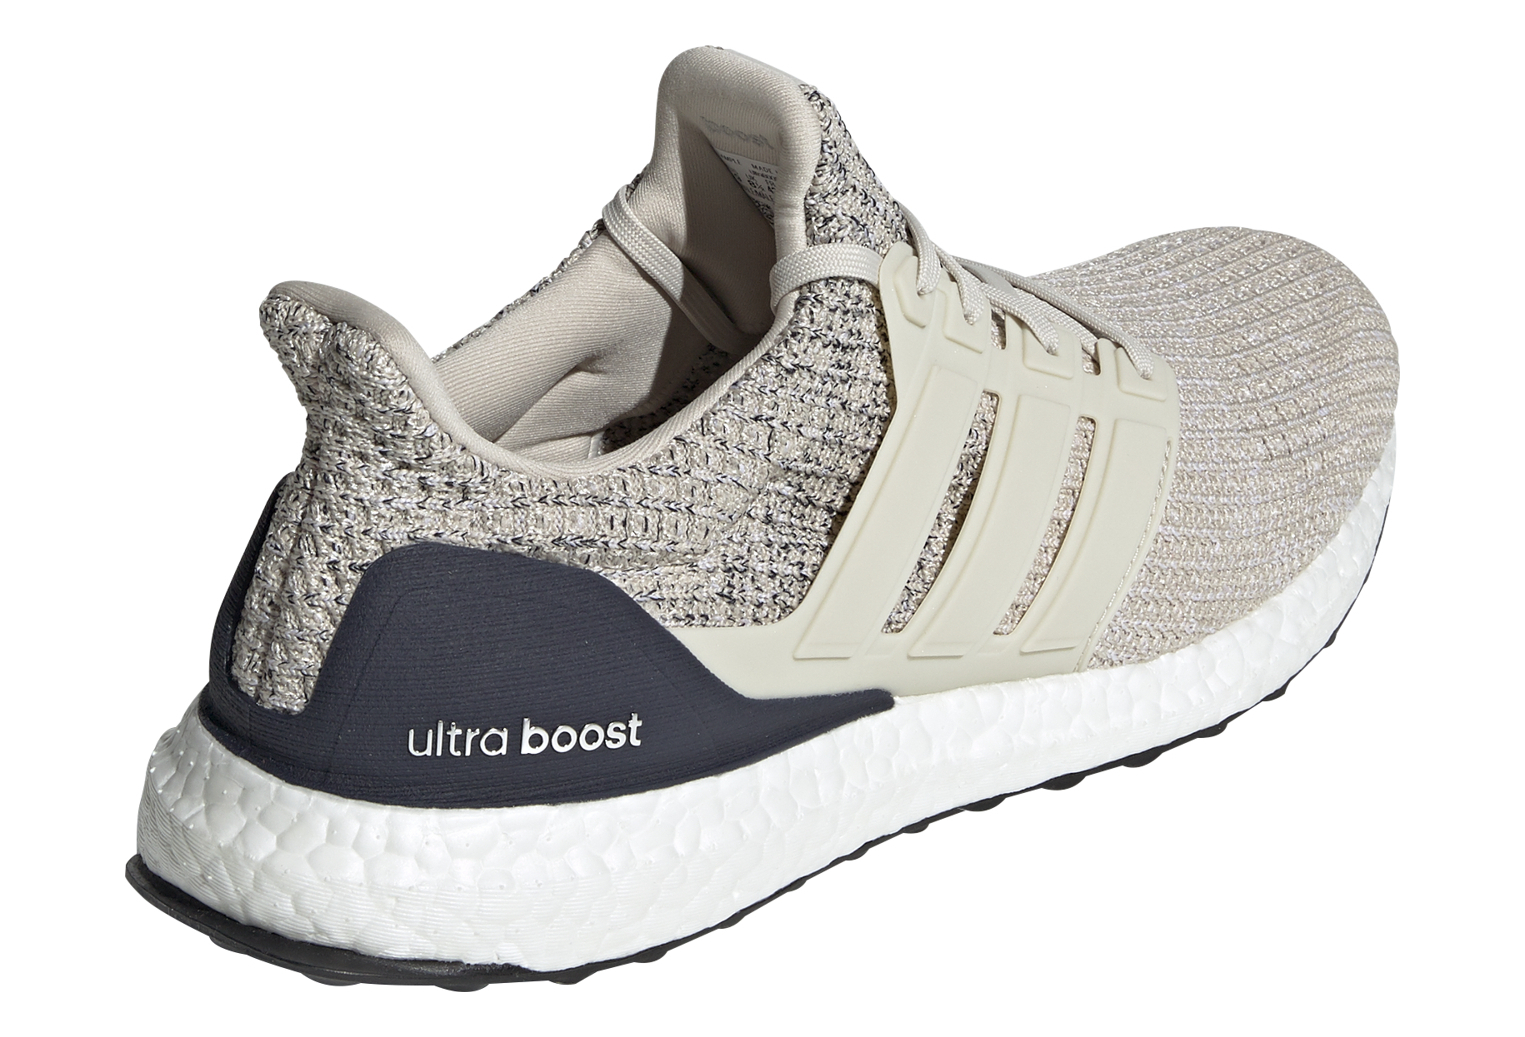 new style e55bf a0b31 Adidas UltraBOOST Shoes Beige